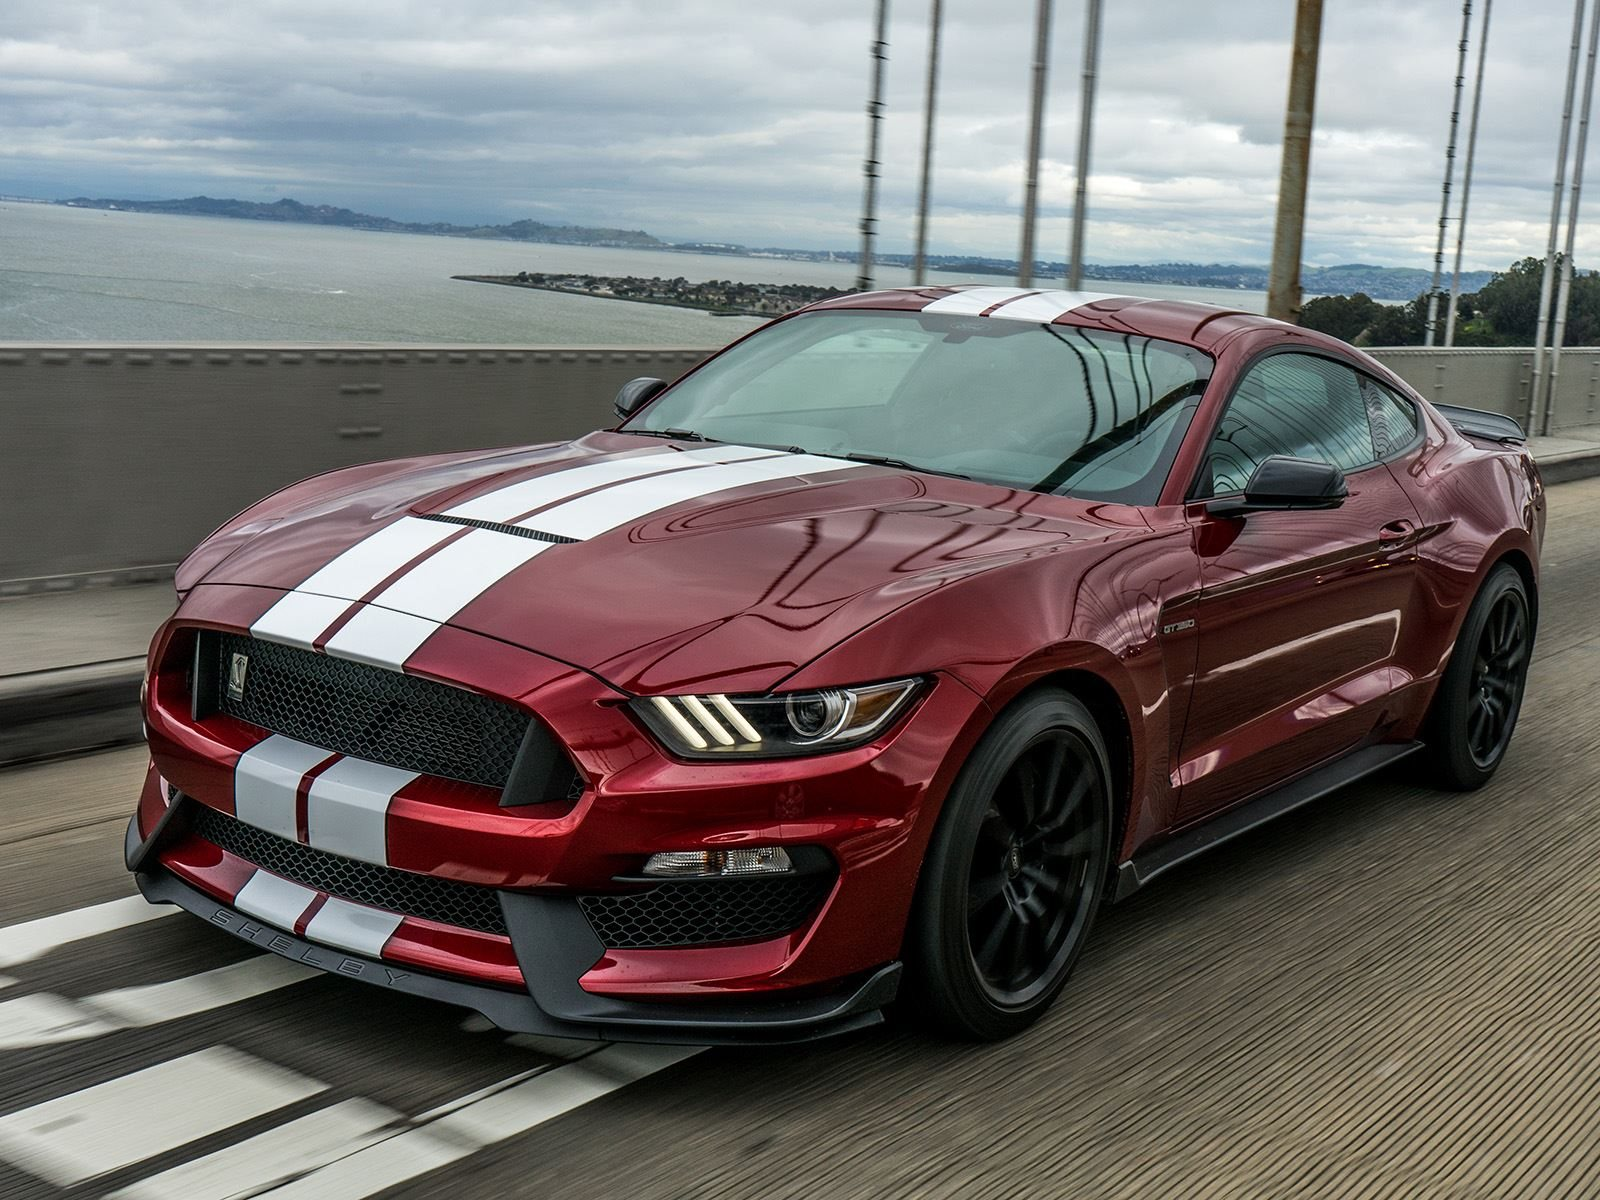 Ford Confirms 700 Horsepower Mustang Gt500 For 2019 Carbuzz